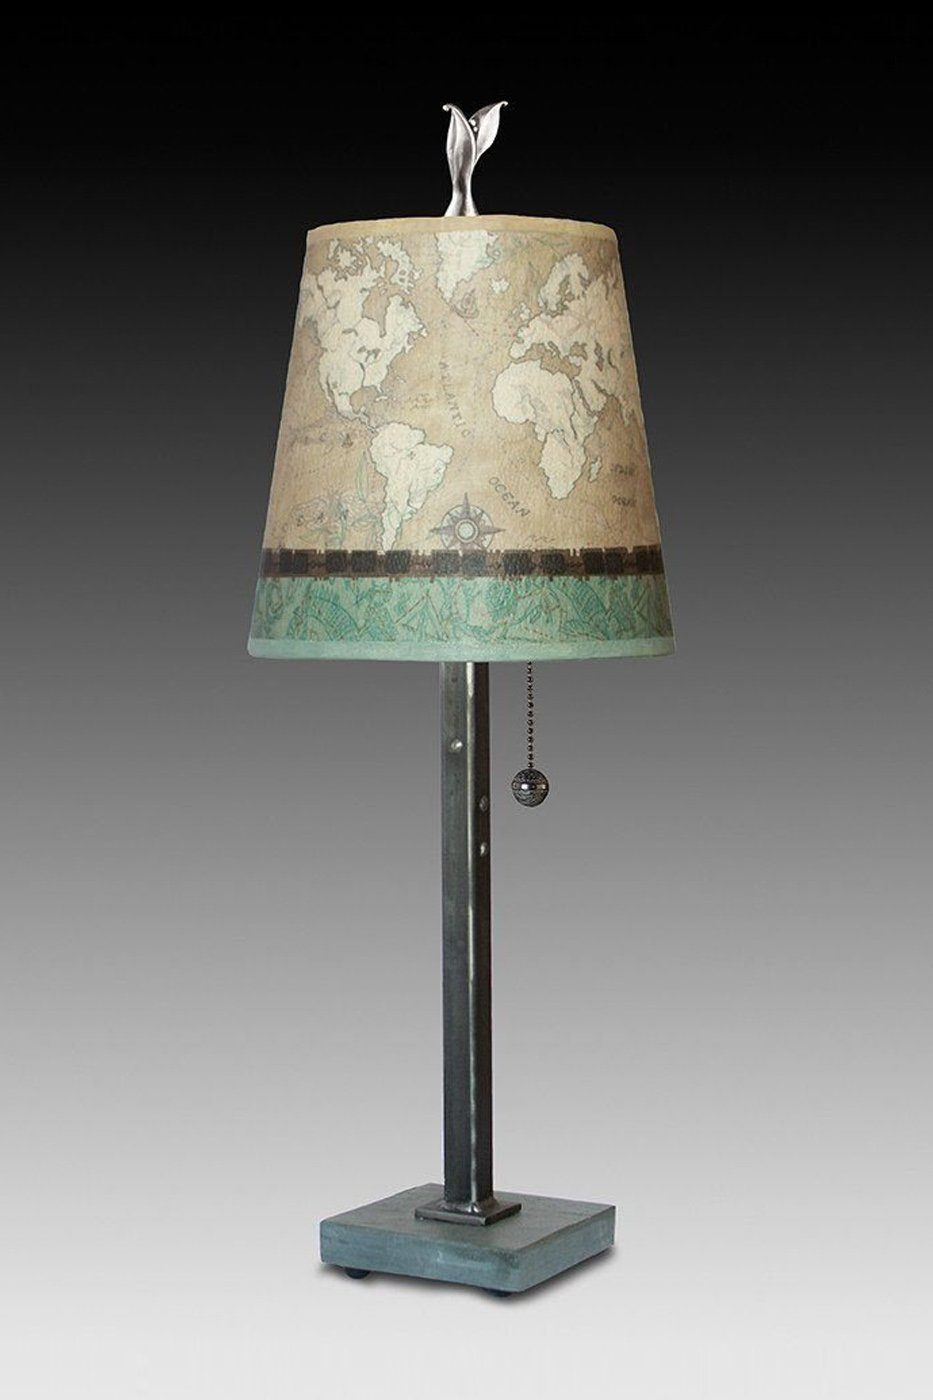 Steel Table Lamp on Vermont Slate Base with Small Drum Shade in Sand Map